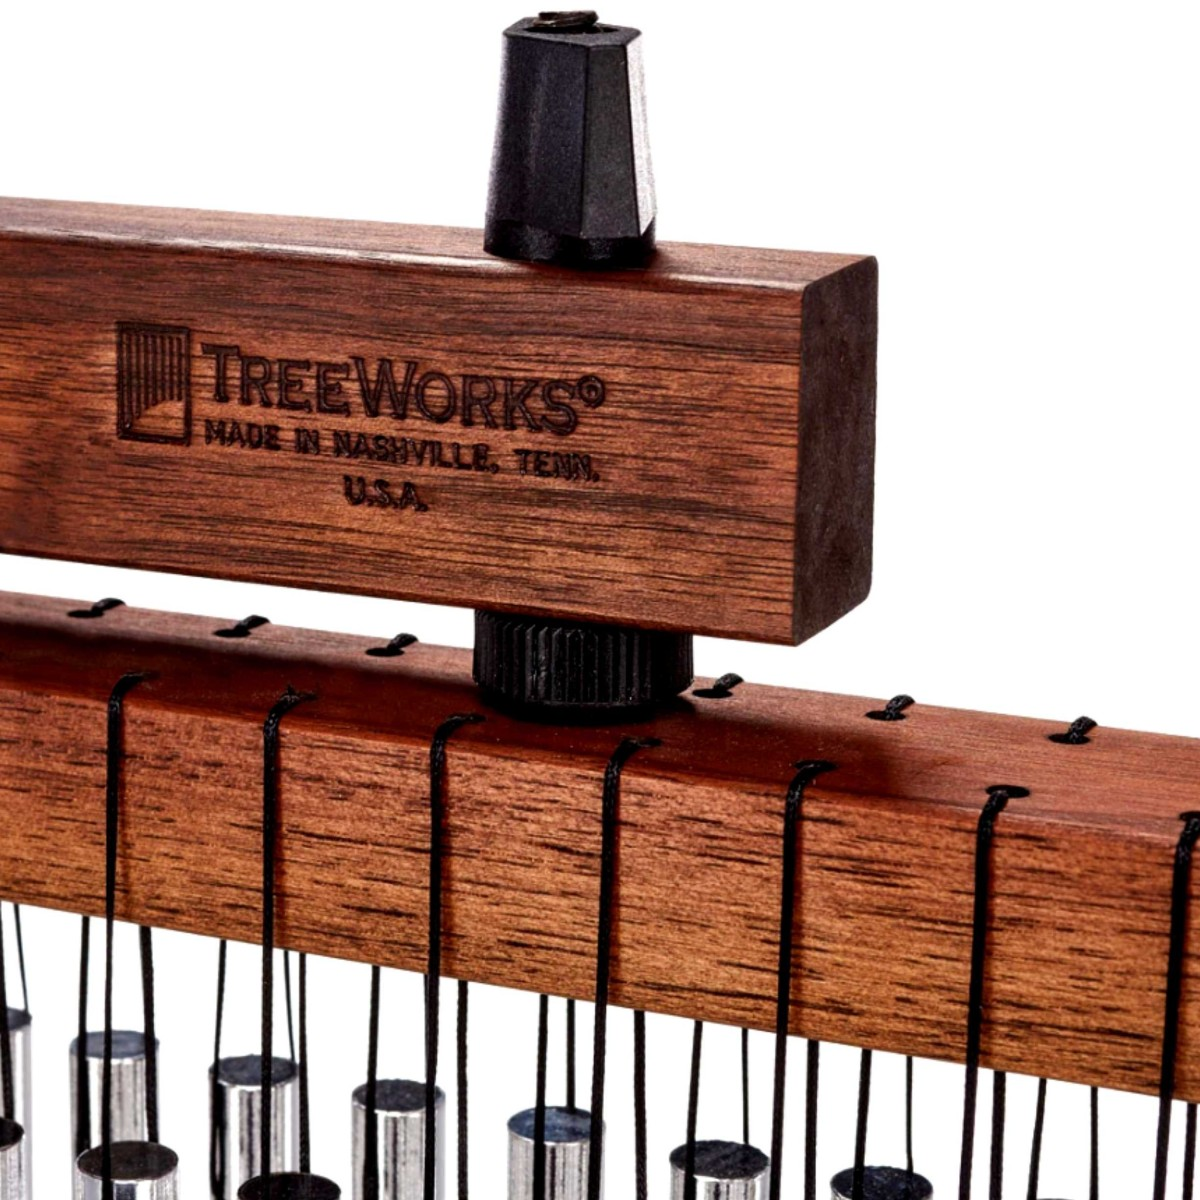 TreeWorks 140 Bar InfiniTree Classic Double Row Chimes